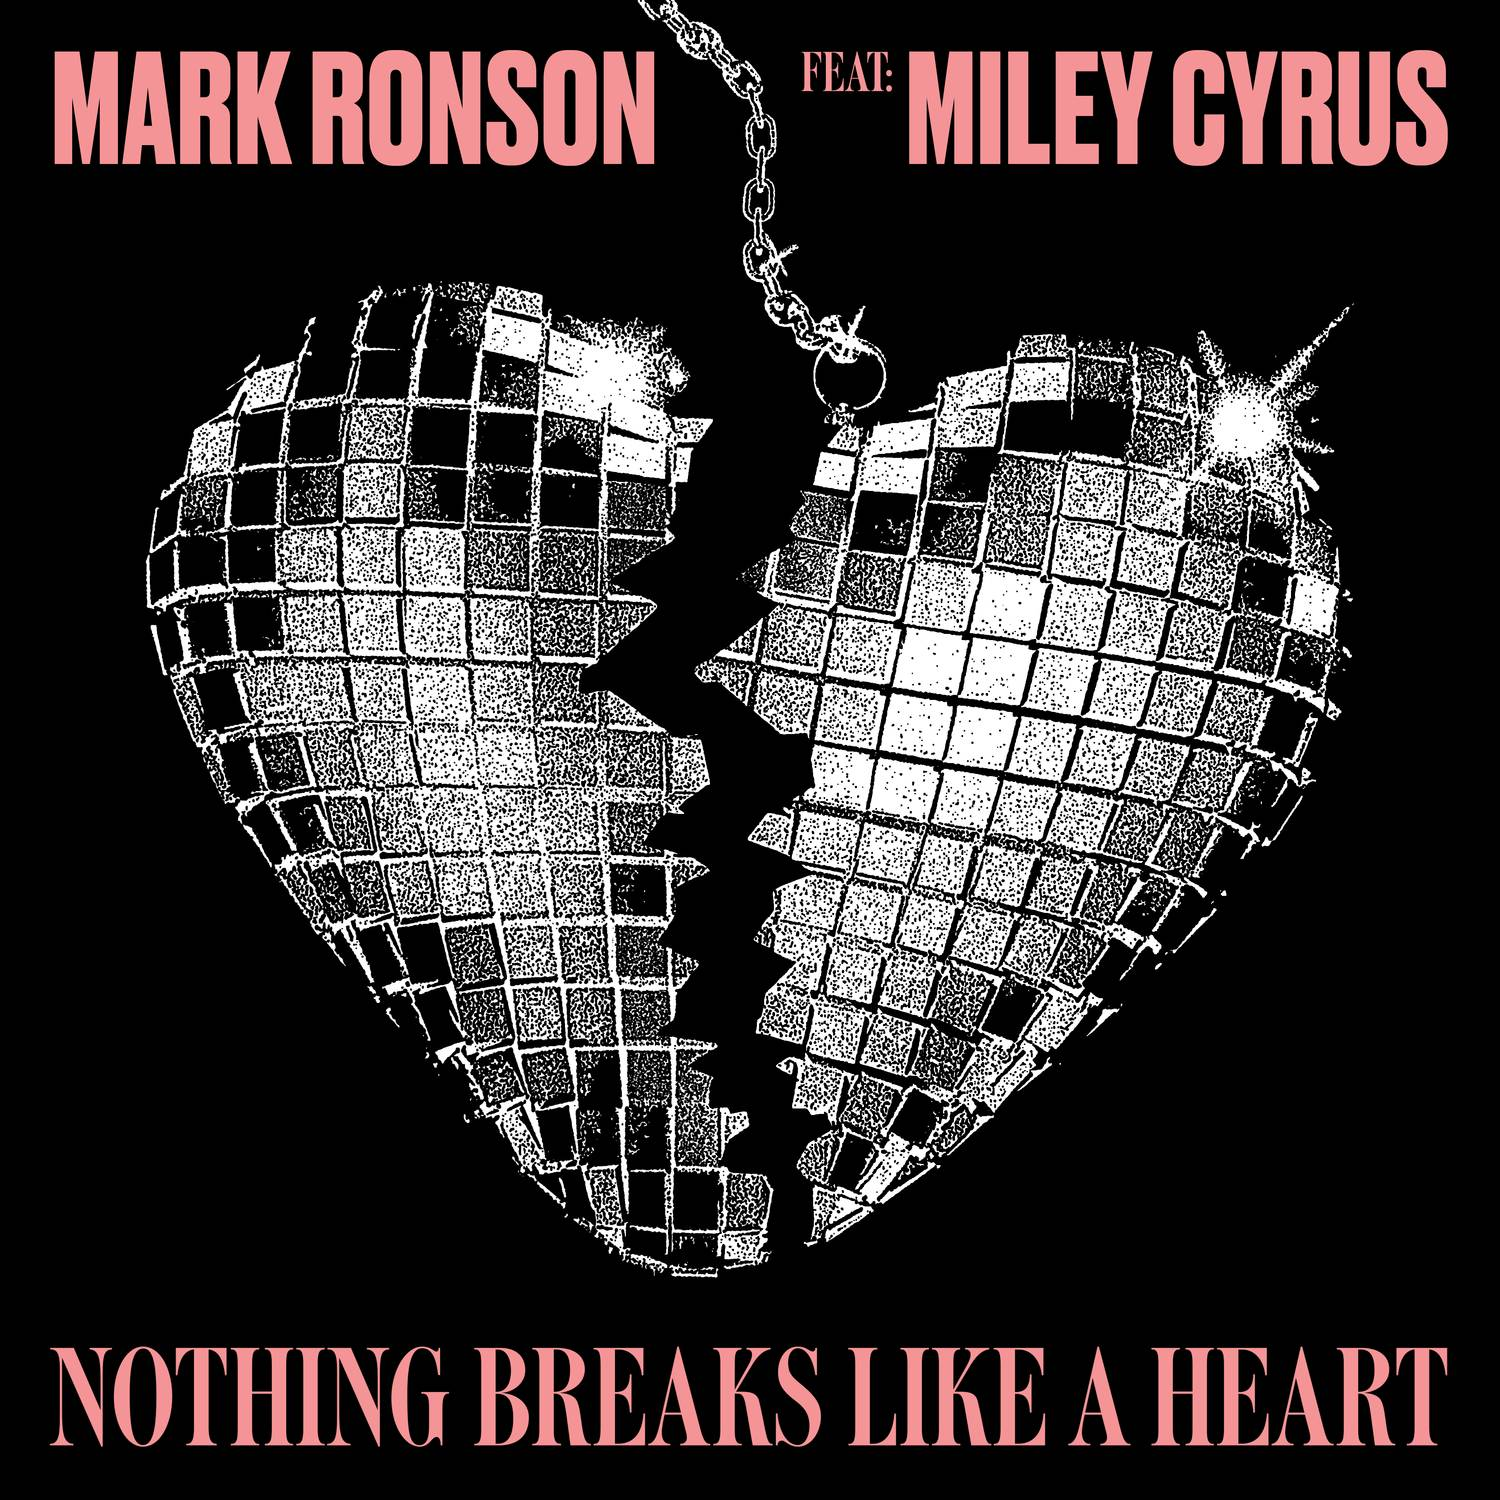 Mark Ronson - Nothing Breaks Like a Heart (feat. Miley Cyrus)